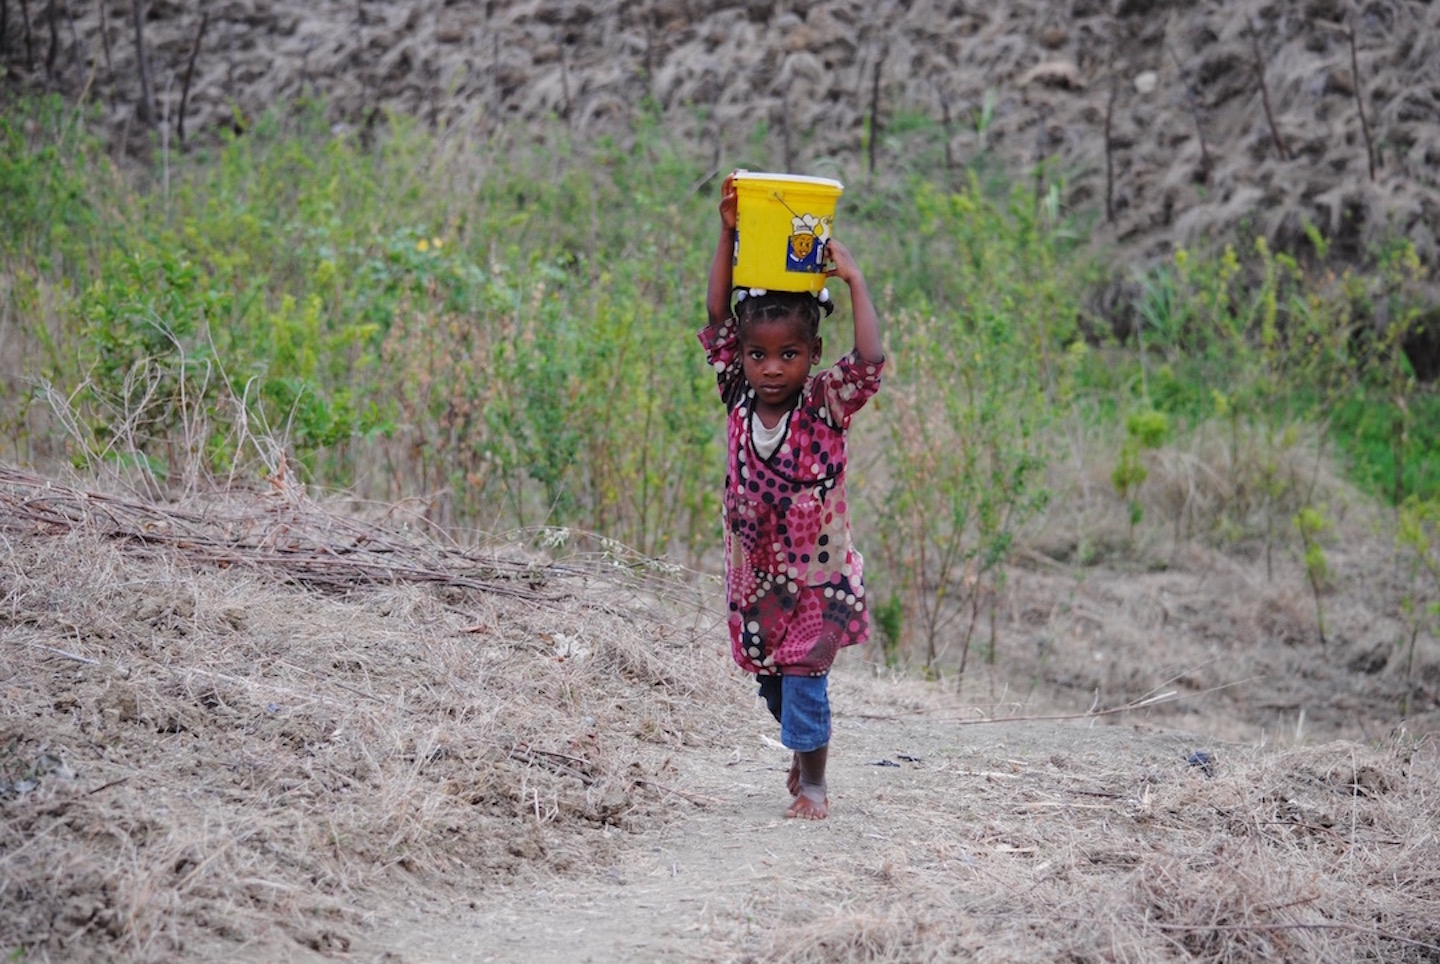 The average family in Project 117's zone walks 2-4 miles per day to retrieve their drinking water